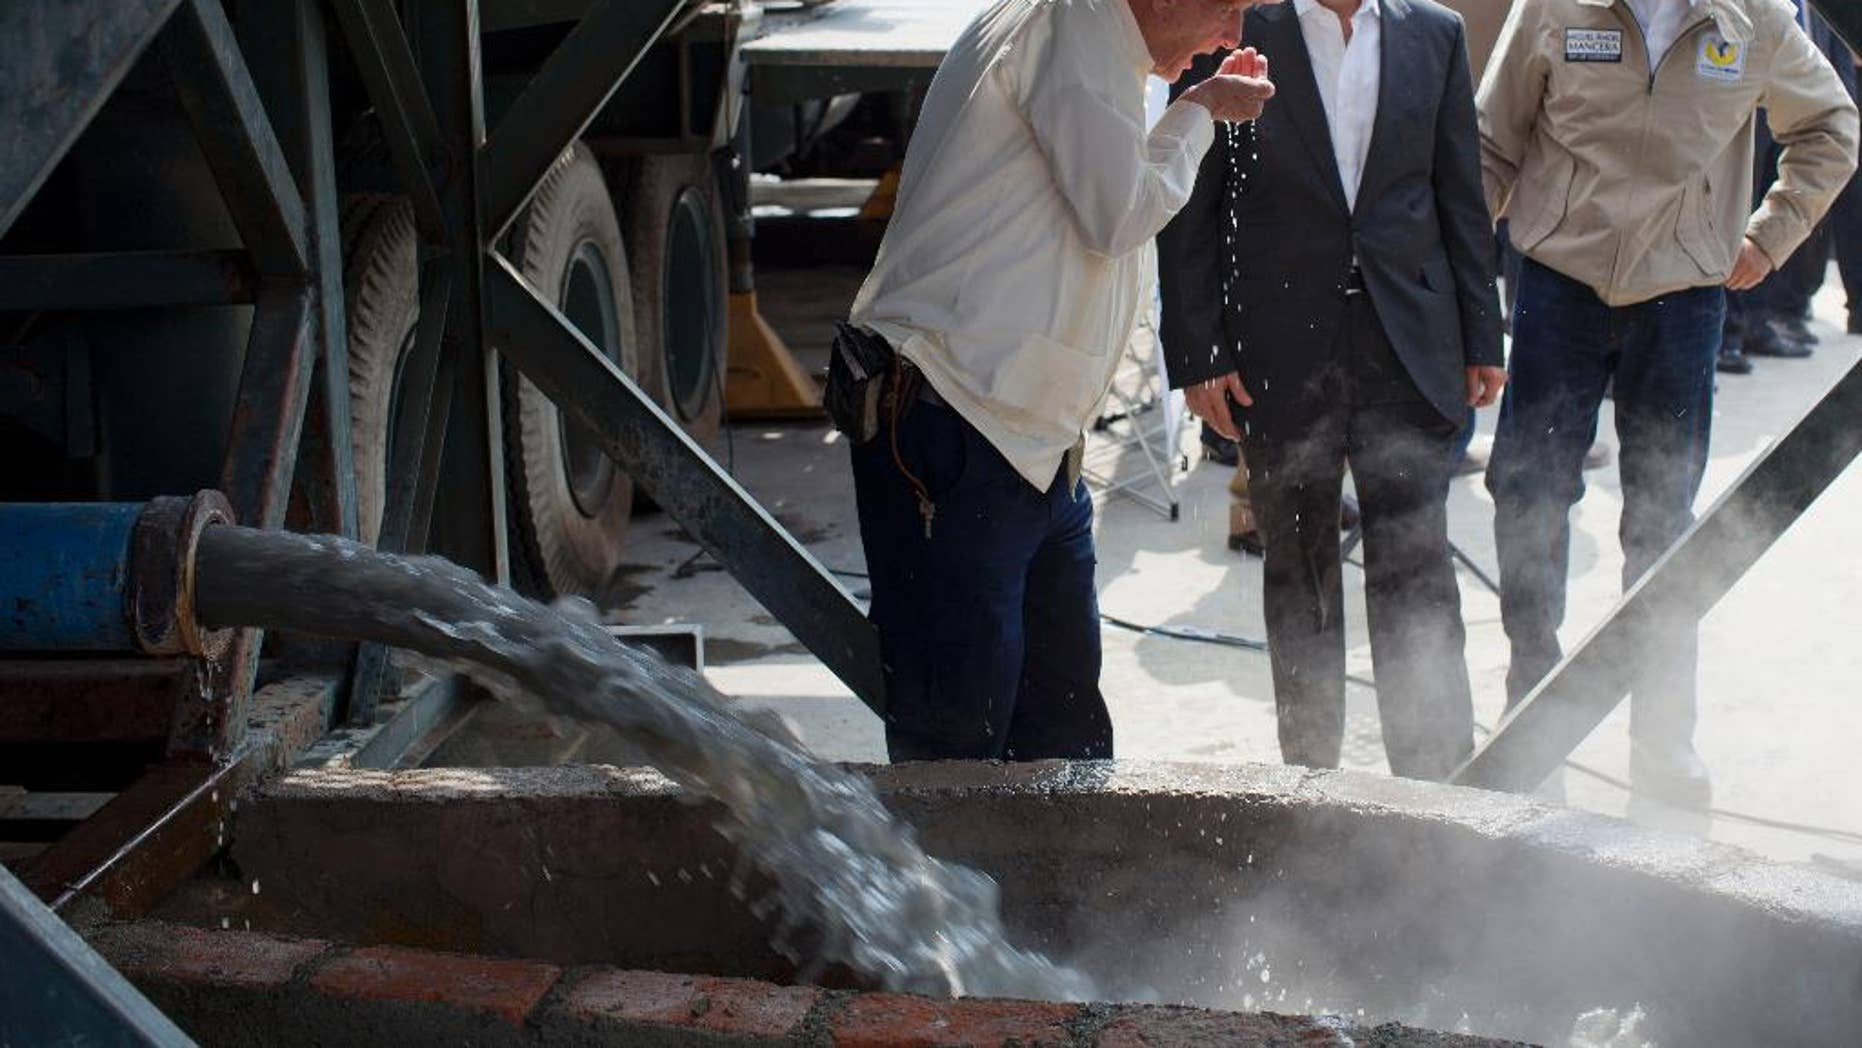 FILE - In this Jan. 23, 2013 file photo, National Water Commission David Korenfeld, center right, watches geologist Federico Mooser take a drink of water from an exploratory well where an aquifer was discovered, in Mexico City. Korenfeld announced his resignation Thursday, April 9, 2015, a week after social media filled with photographs, apparently taken by a neighbor on March 29, showing people walking with suitcases to a helicopter marked with the agency's name. (AP Photo/Dario Lopez-Mills, File)